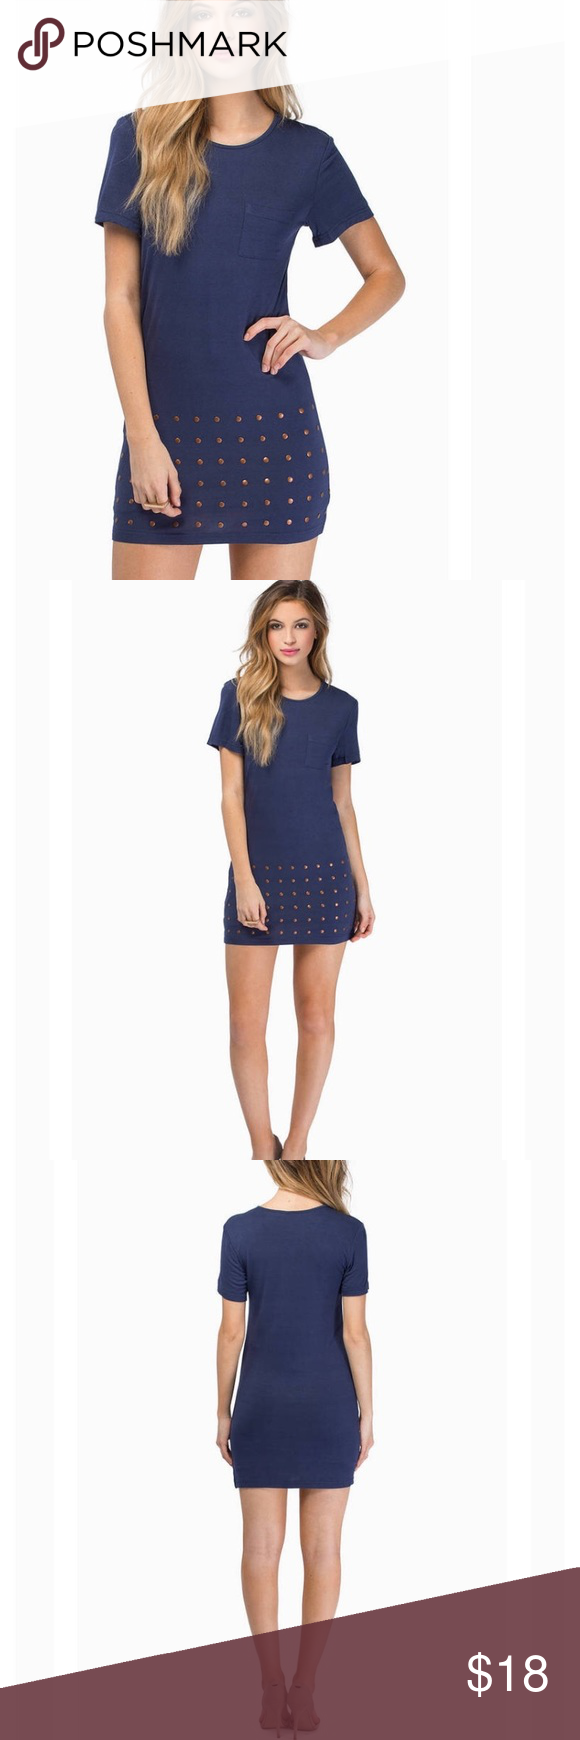 Navy blue dot dress navy blue short sleeve dot dress with chest